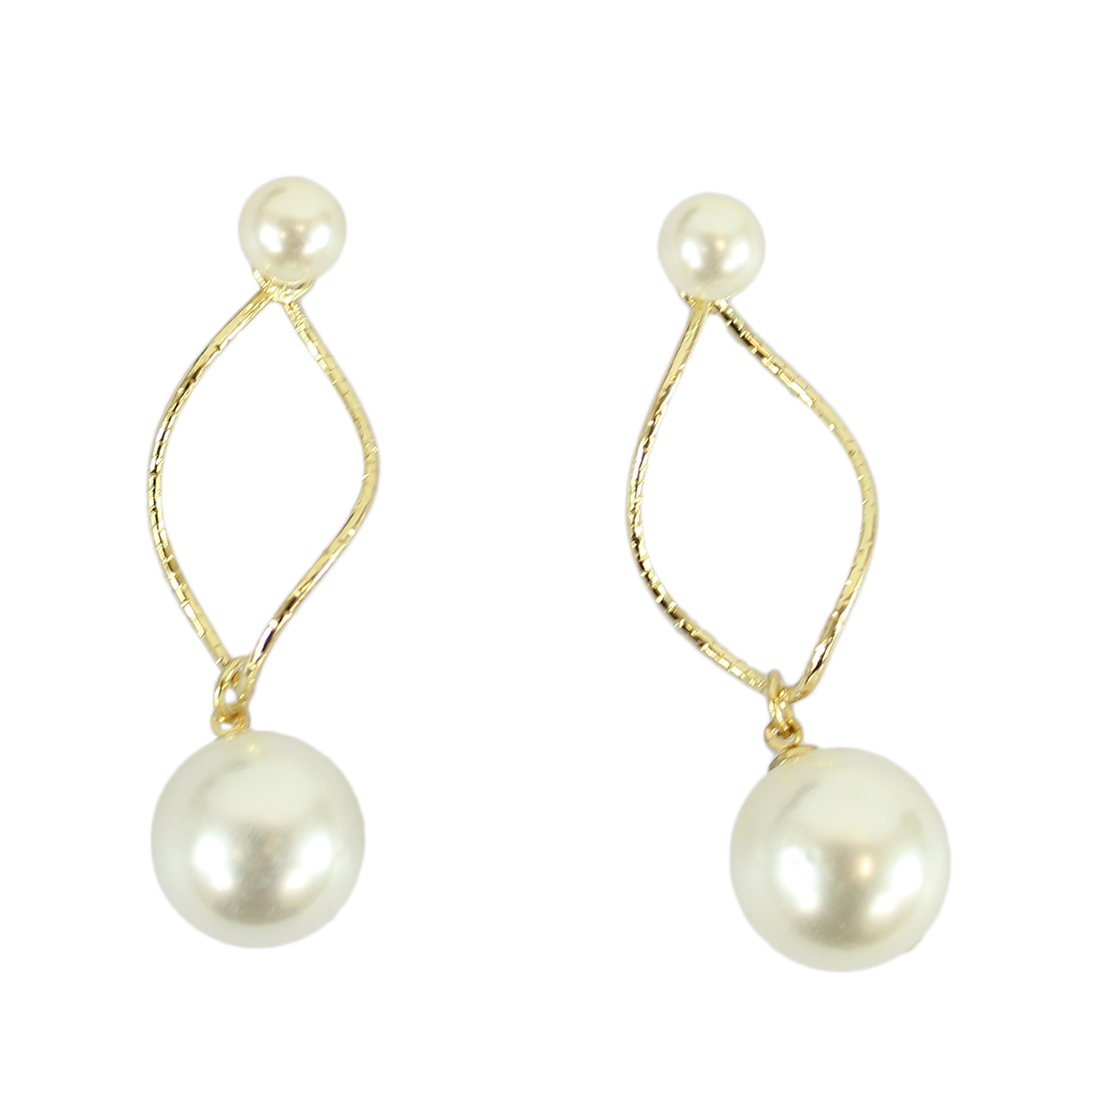 Dangle earrings with big and small white pearls